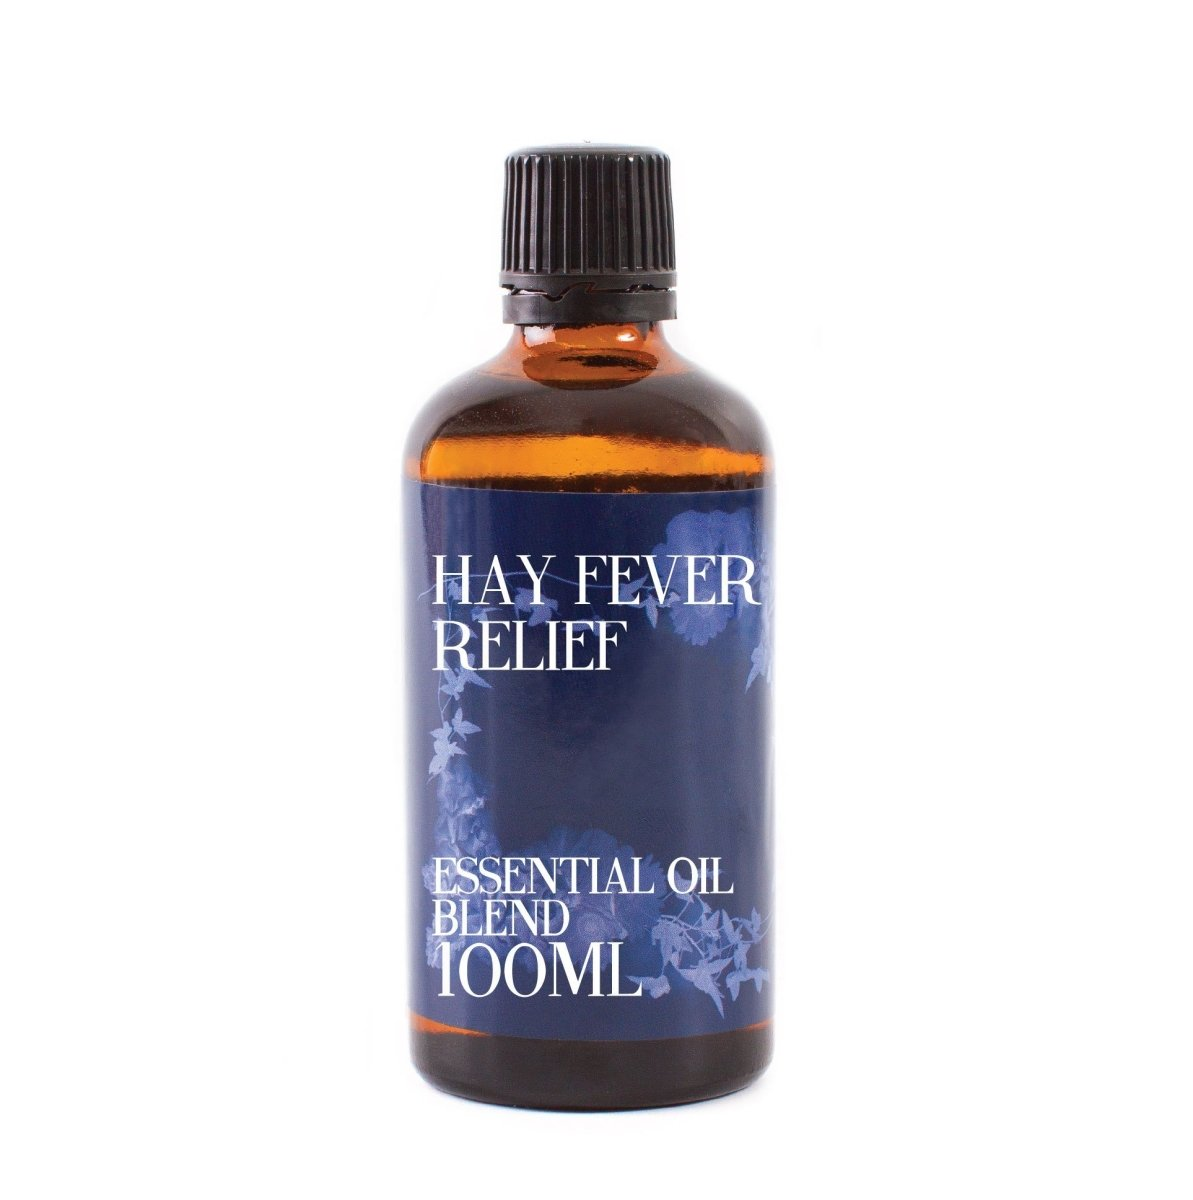 Hay Fever Relief - Essential Oil Blends - Mystic Moments UK